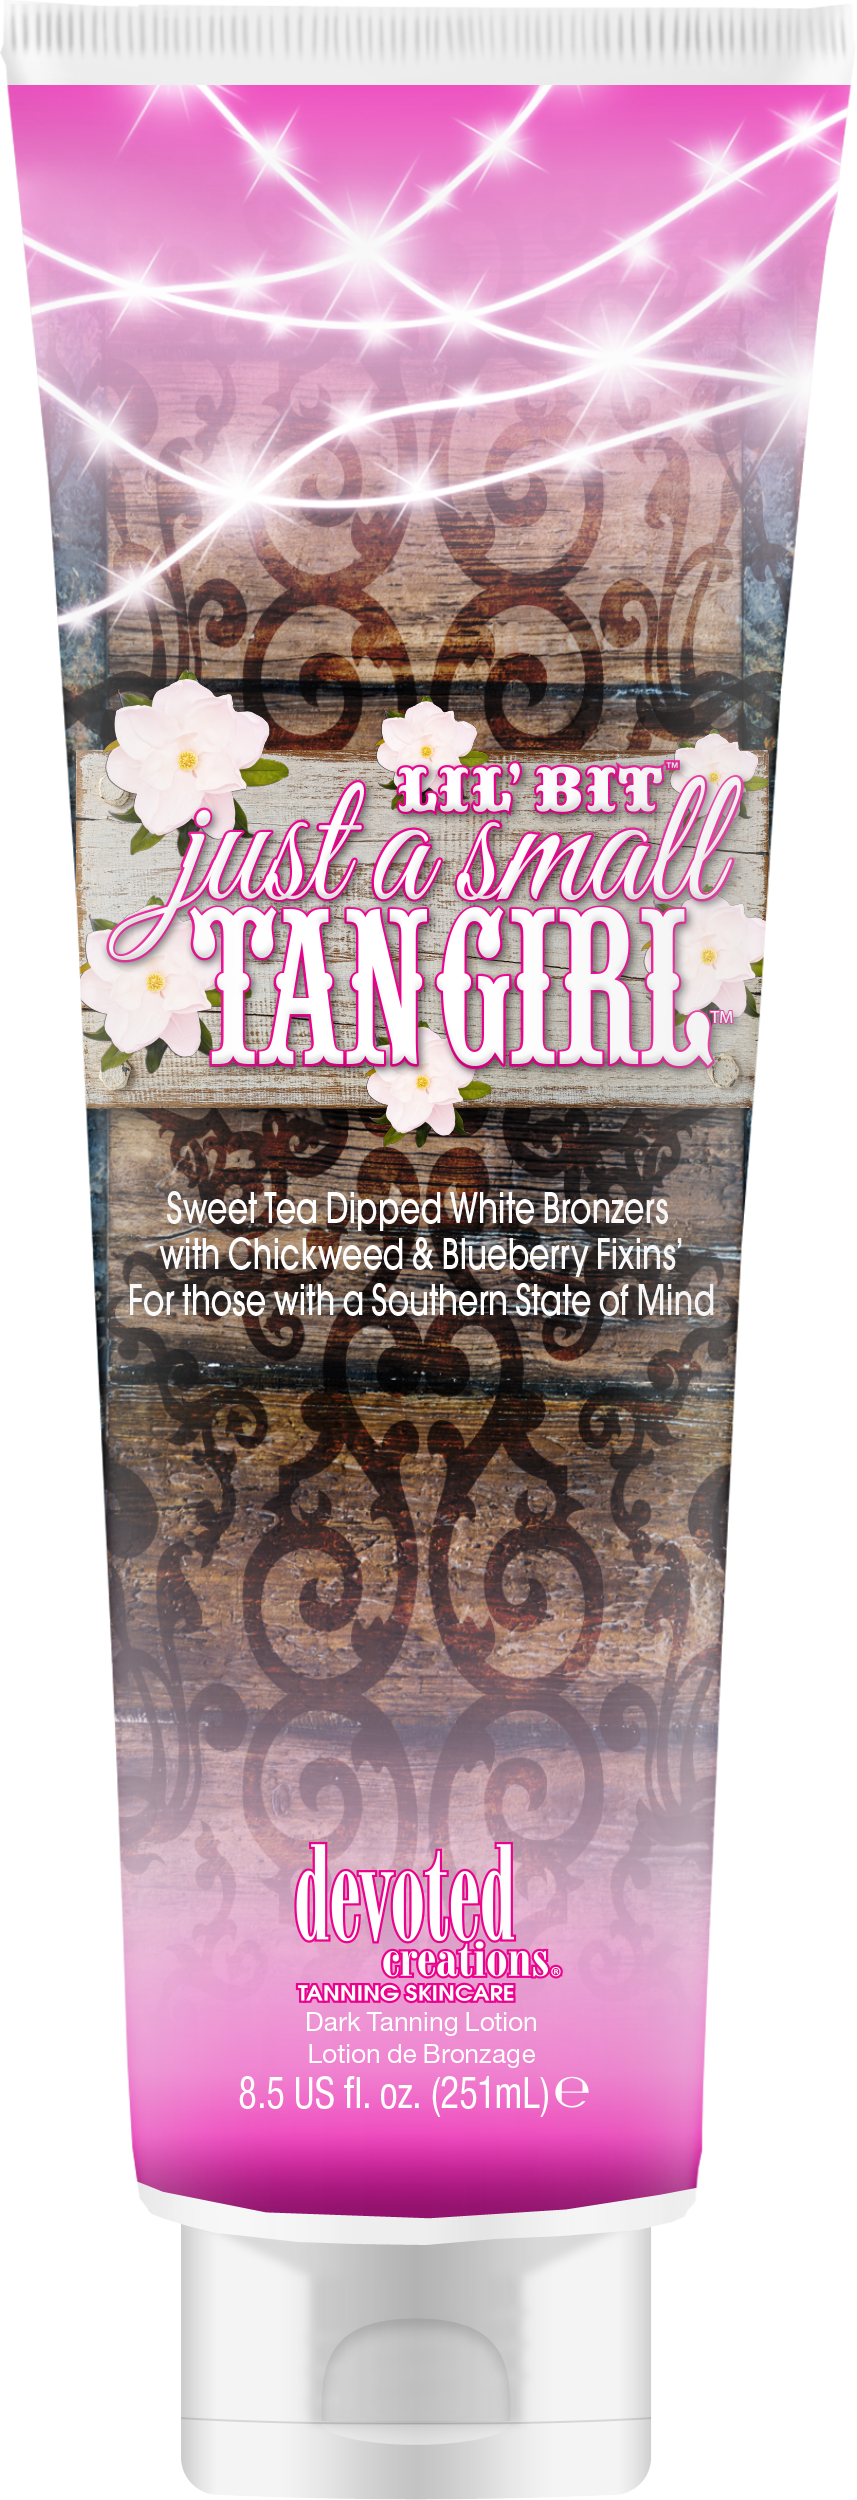 Lil Bit Just a Small Tan Girl Sweet Tea Dipped White Bronzers